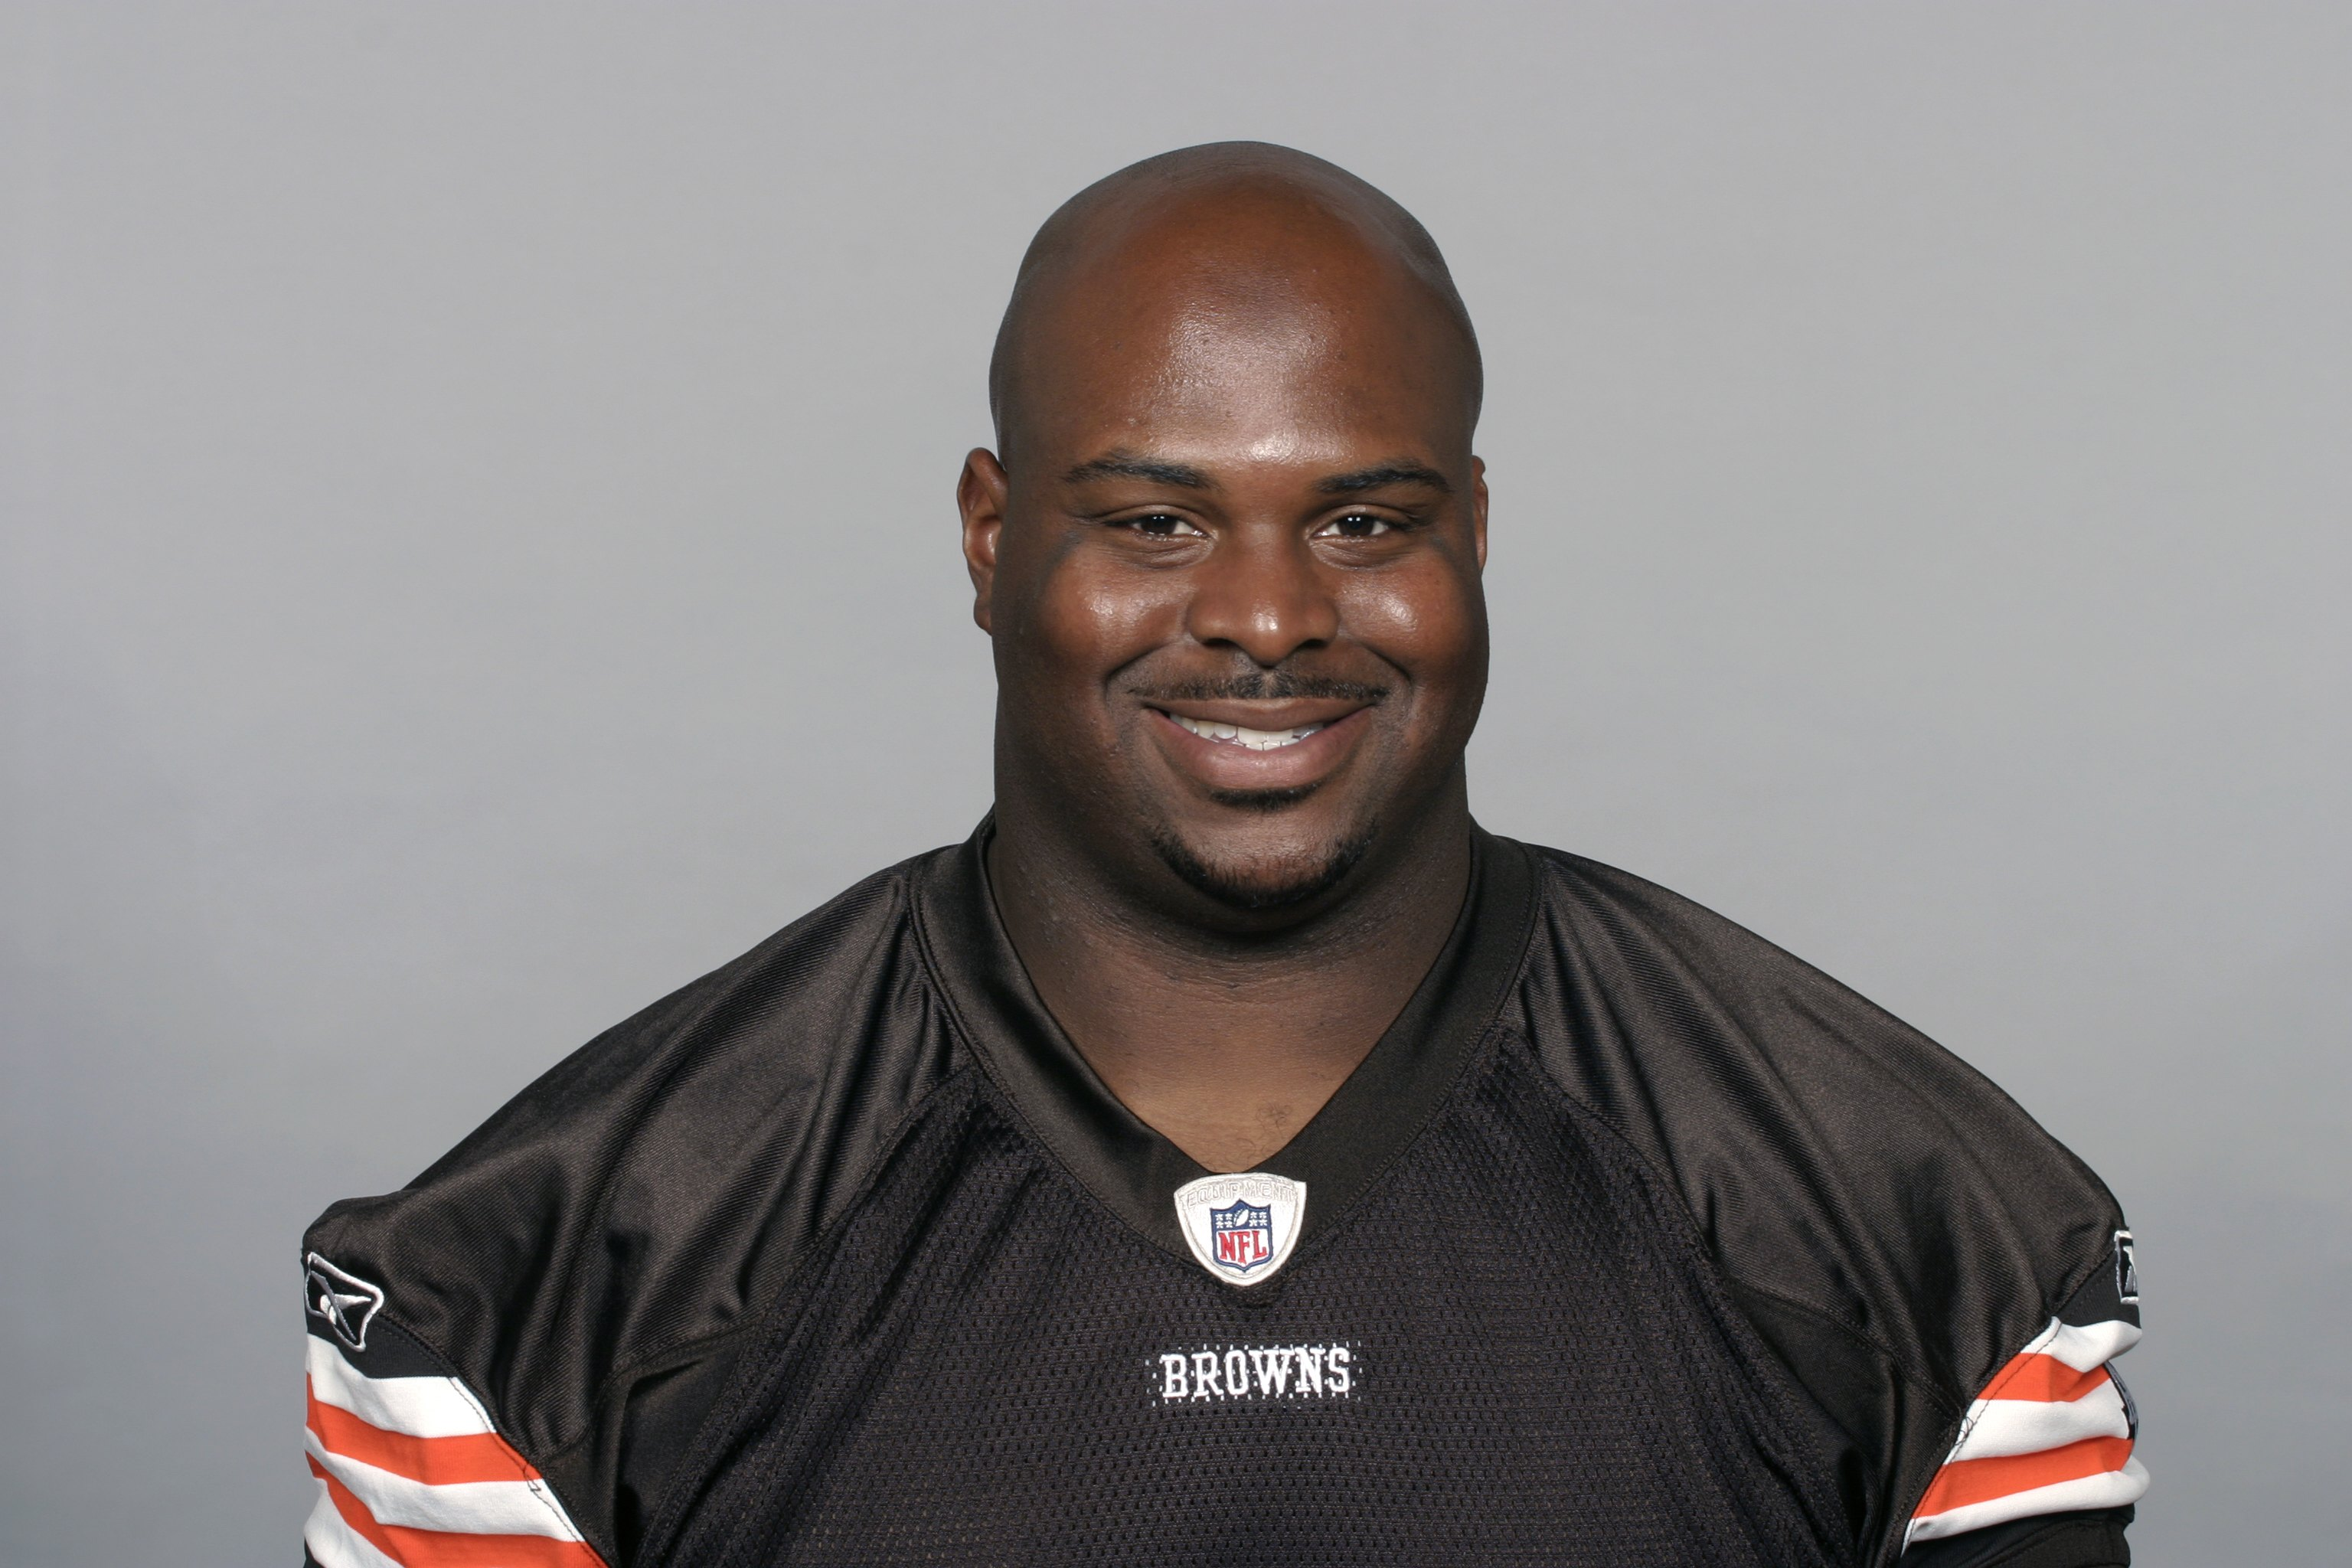 CLEVELAND - 2009:  Floyd Womack of the Cleveland Browns poses for his 2009 NFL headshot at photo day in Cleveland, Ohio. (Photo by NFL Photos)